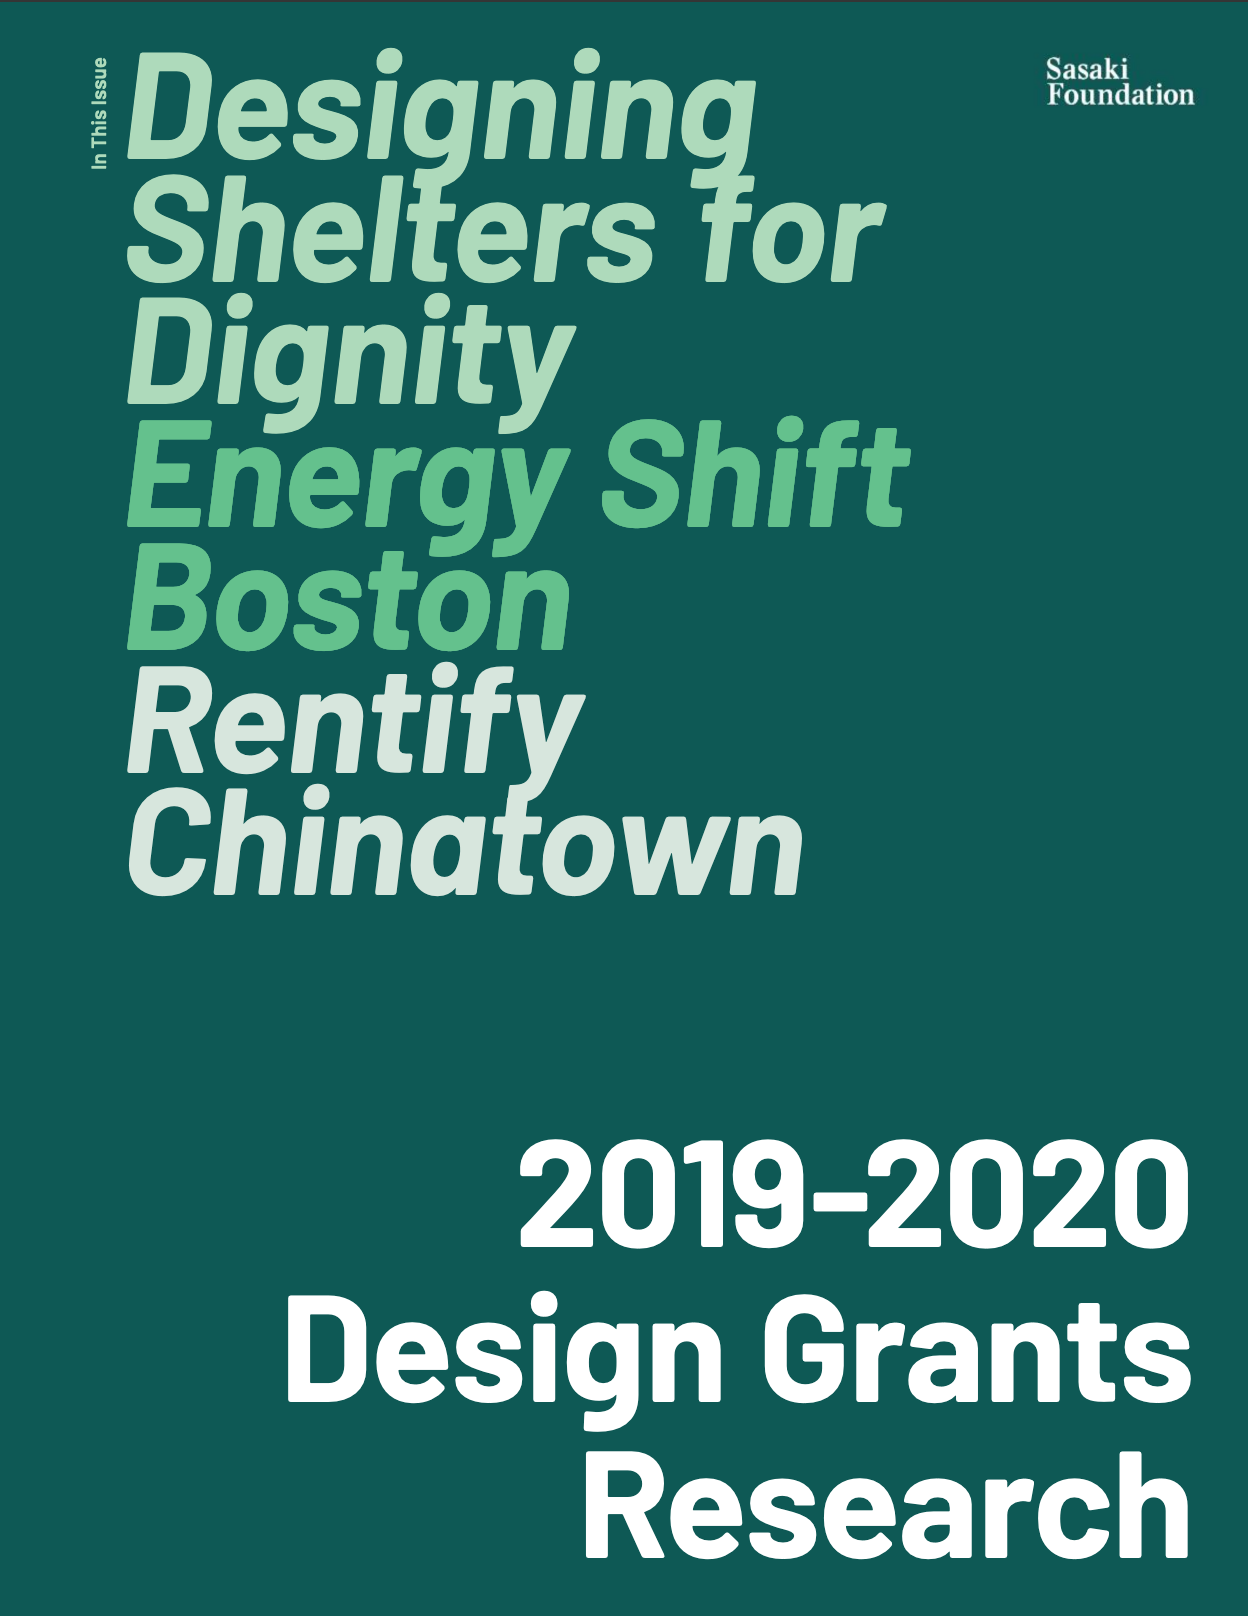 Designing Shelters for Dignity: Energy Shift Boston Rentify  Chinatown